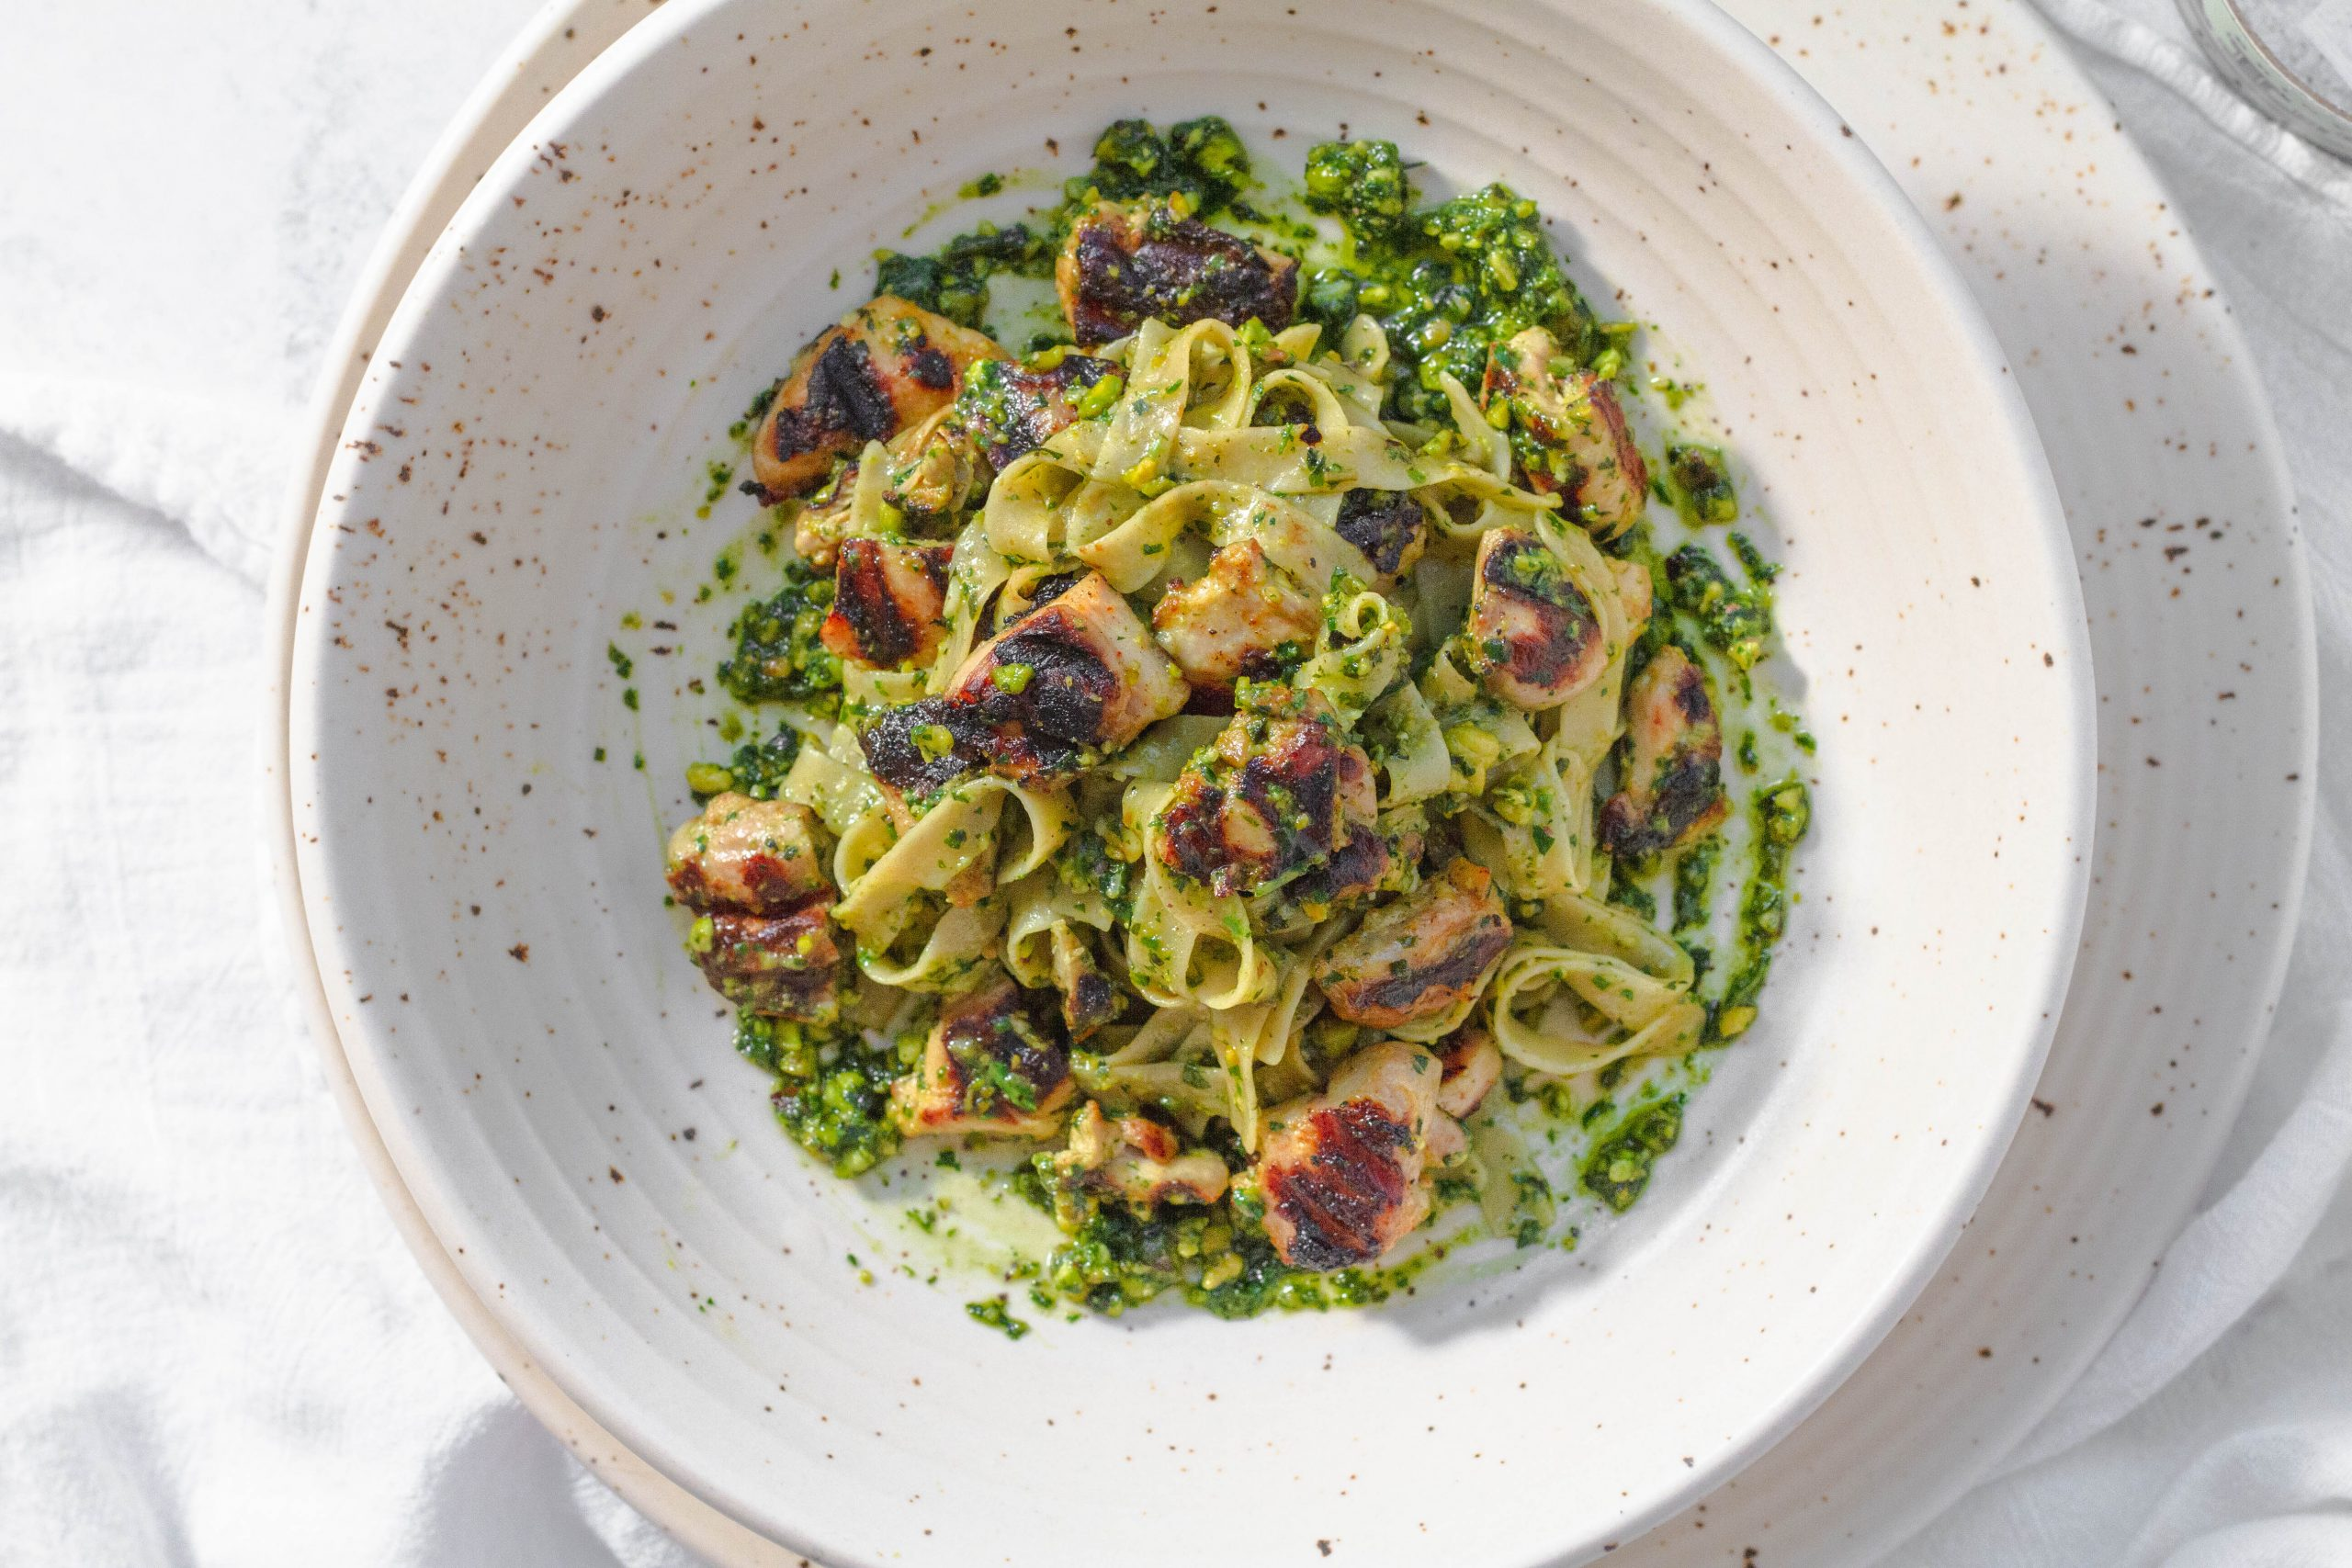 Pistachio pesto with egg noodles and chicken